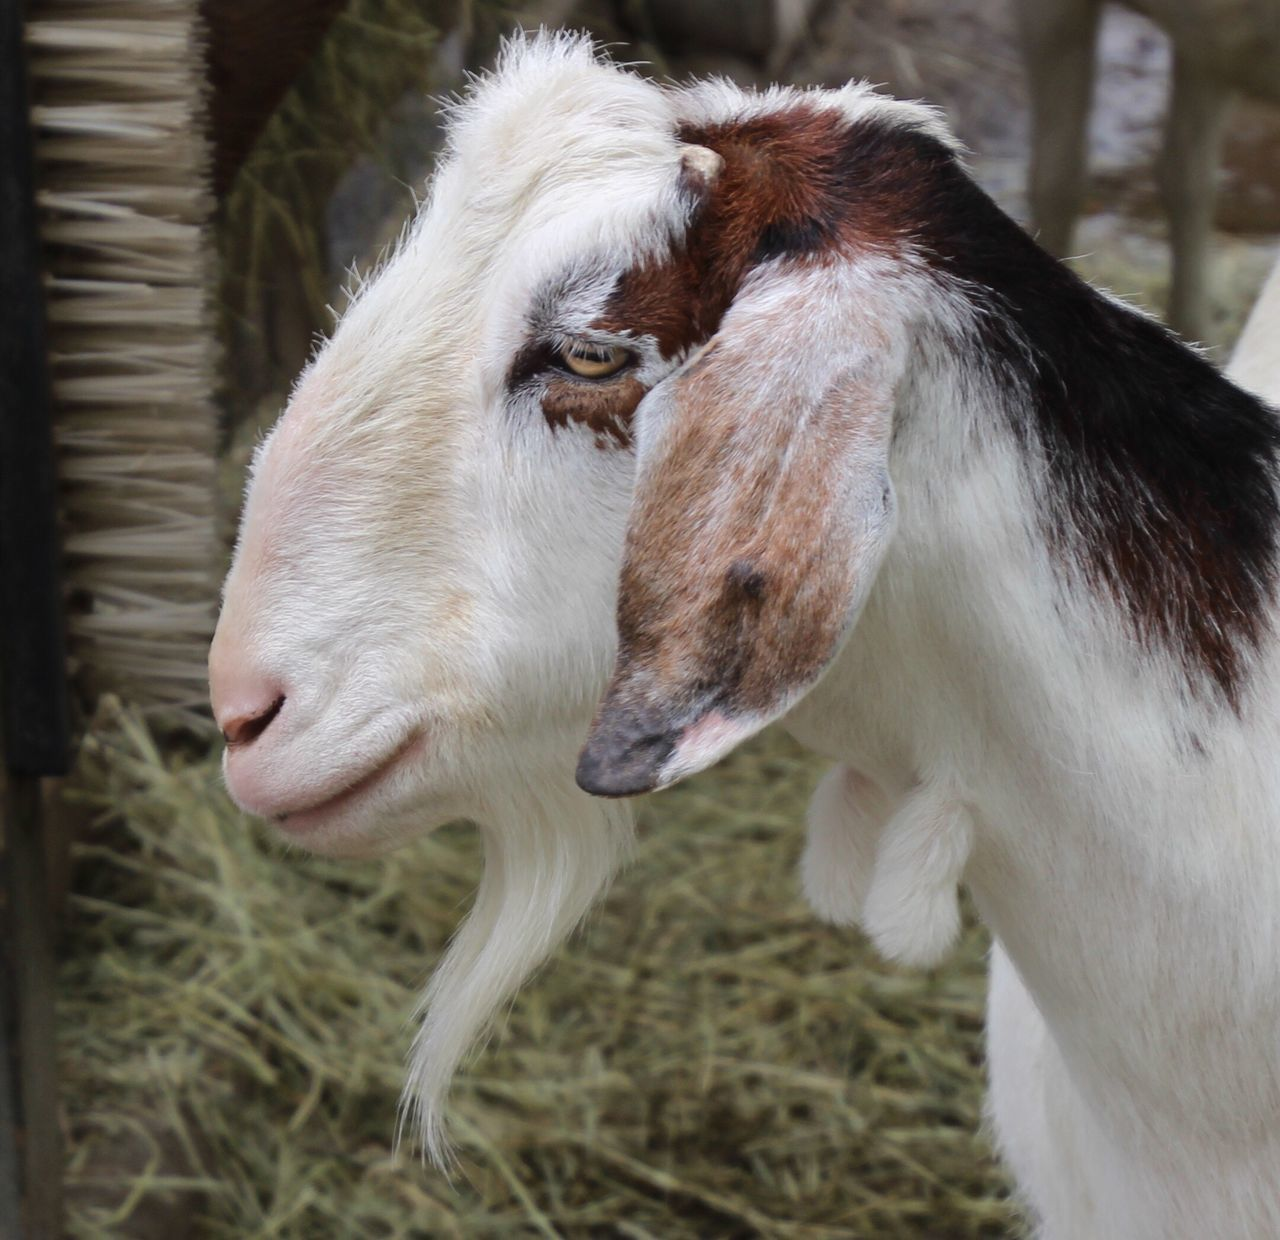 Animal Themes Livestock Close-up Pensive Goat Outdoors Nature No People Focus On Foreground